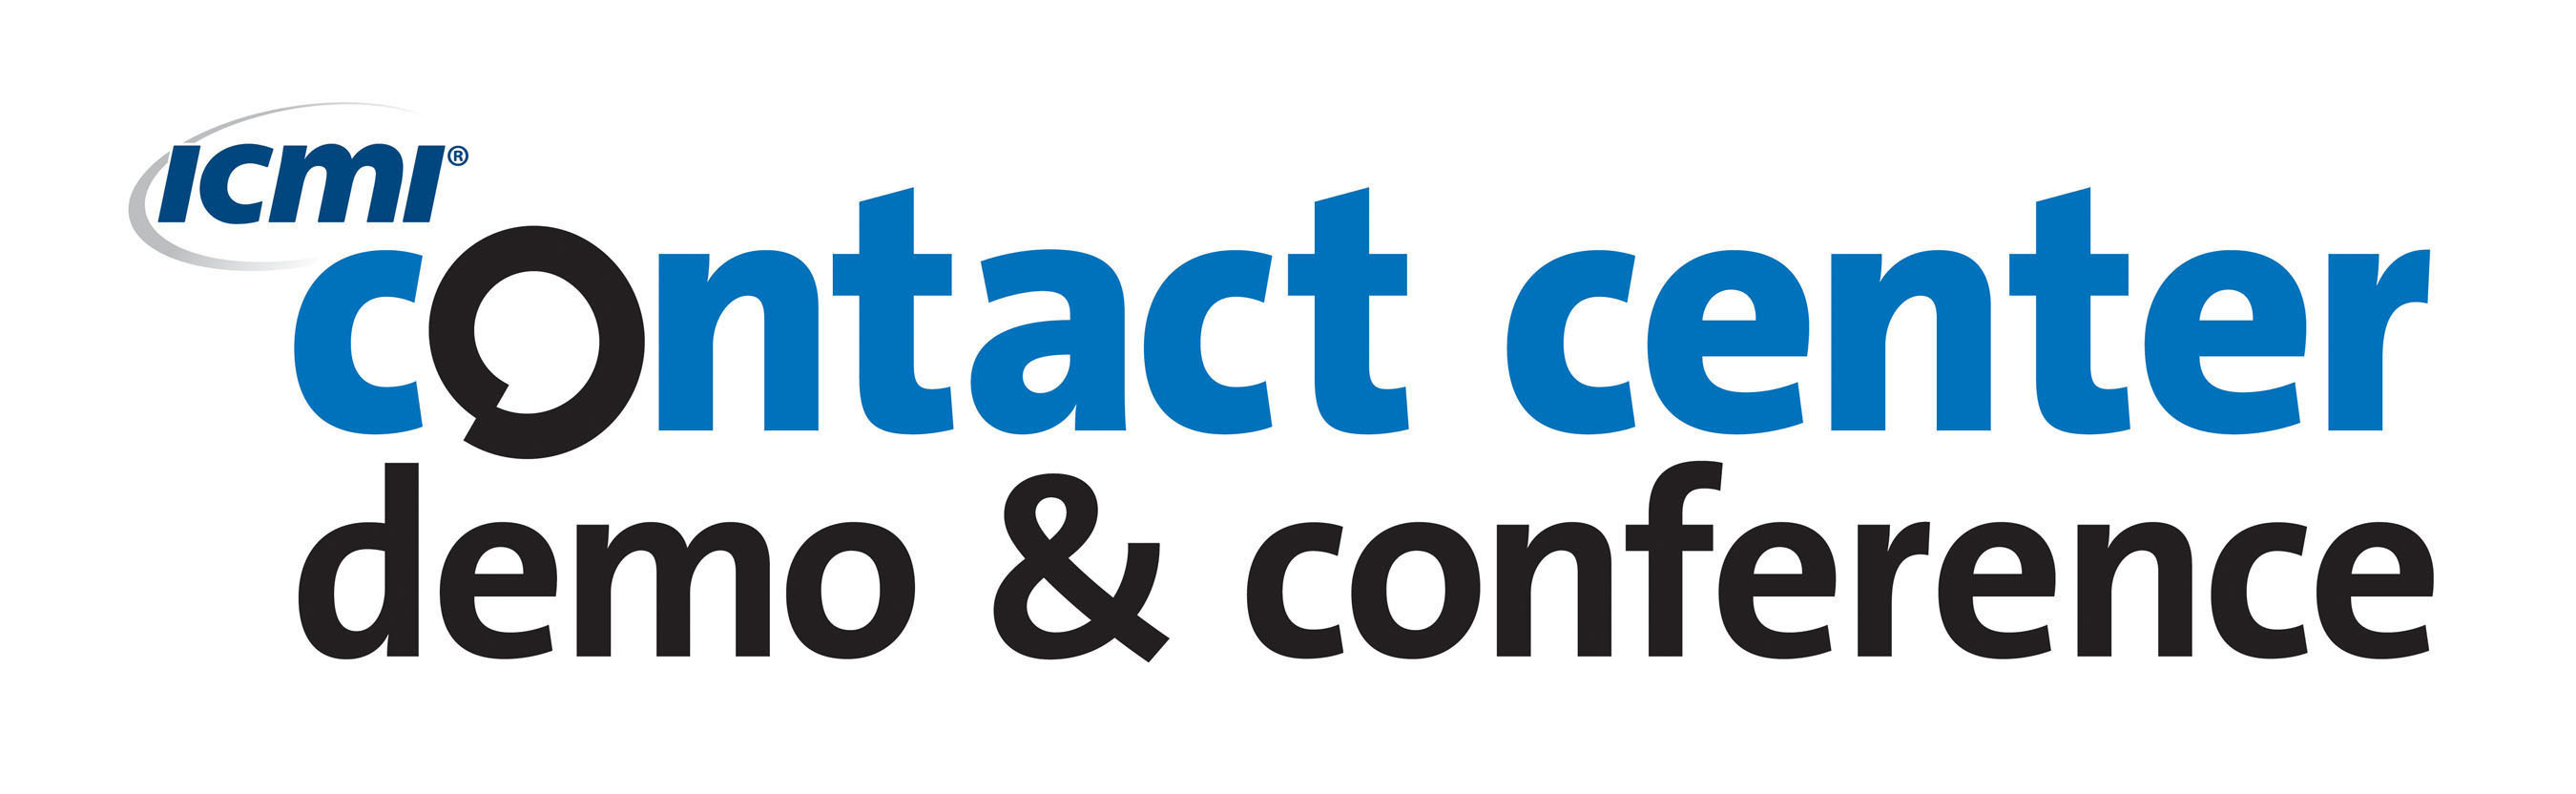 ICMI Contact Center Demo & Conference Announces Eight Interactive Workshops for 2016 Event